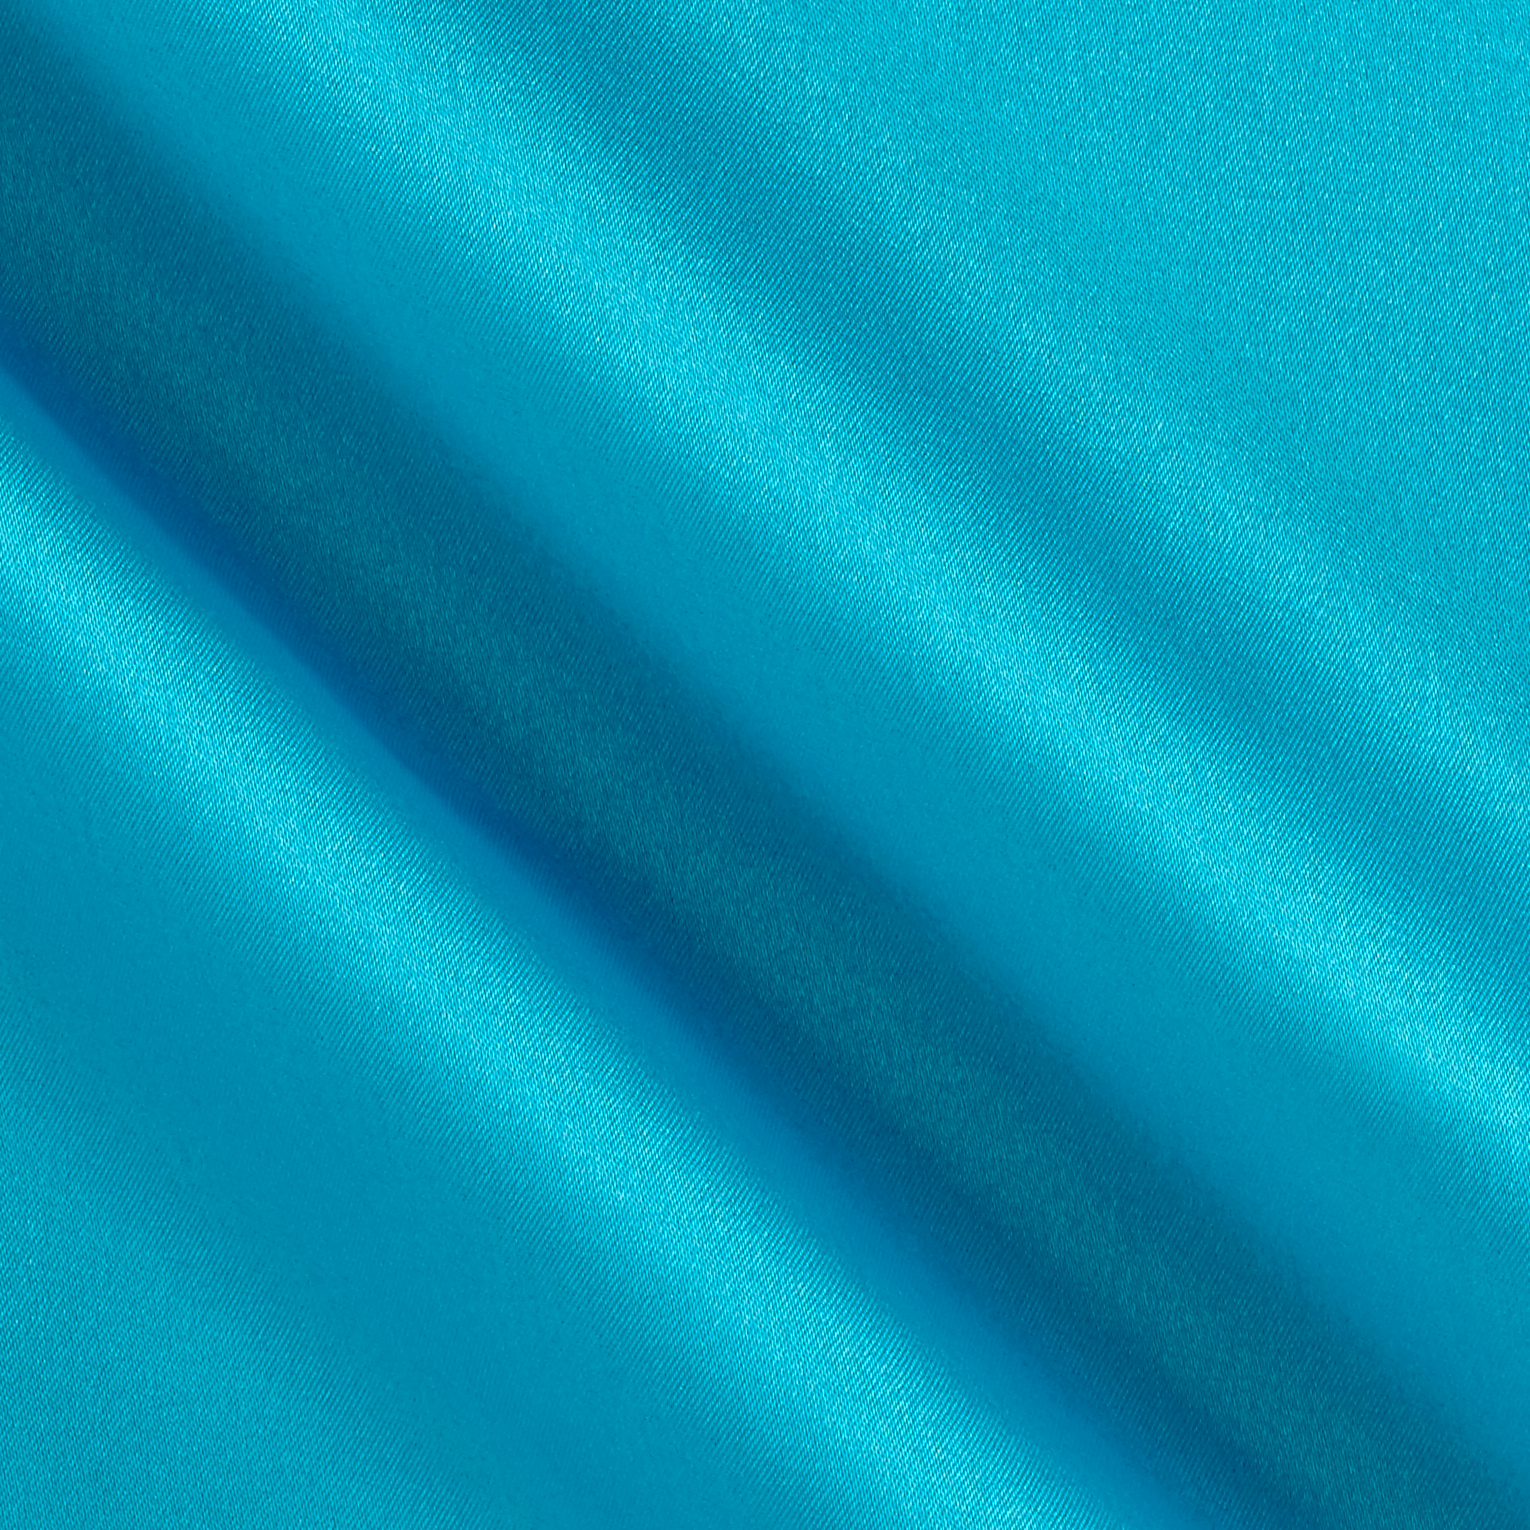 Debutante Stretch Satin Turquoise Fabric by Logantex in USA